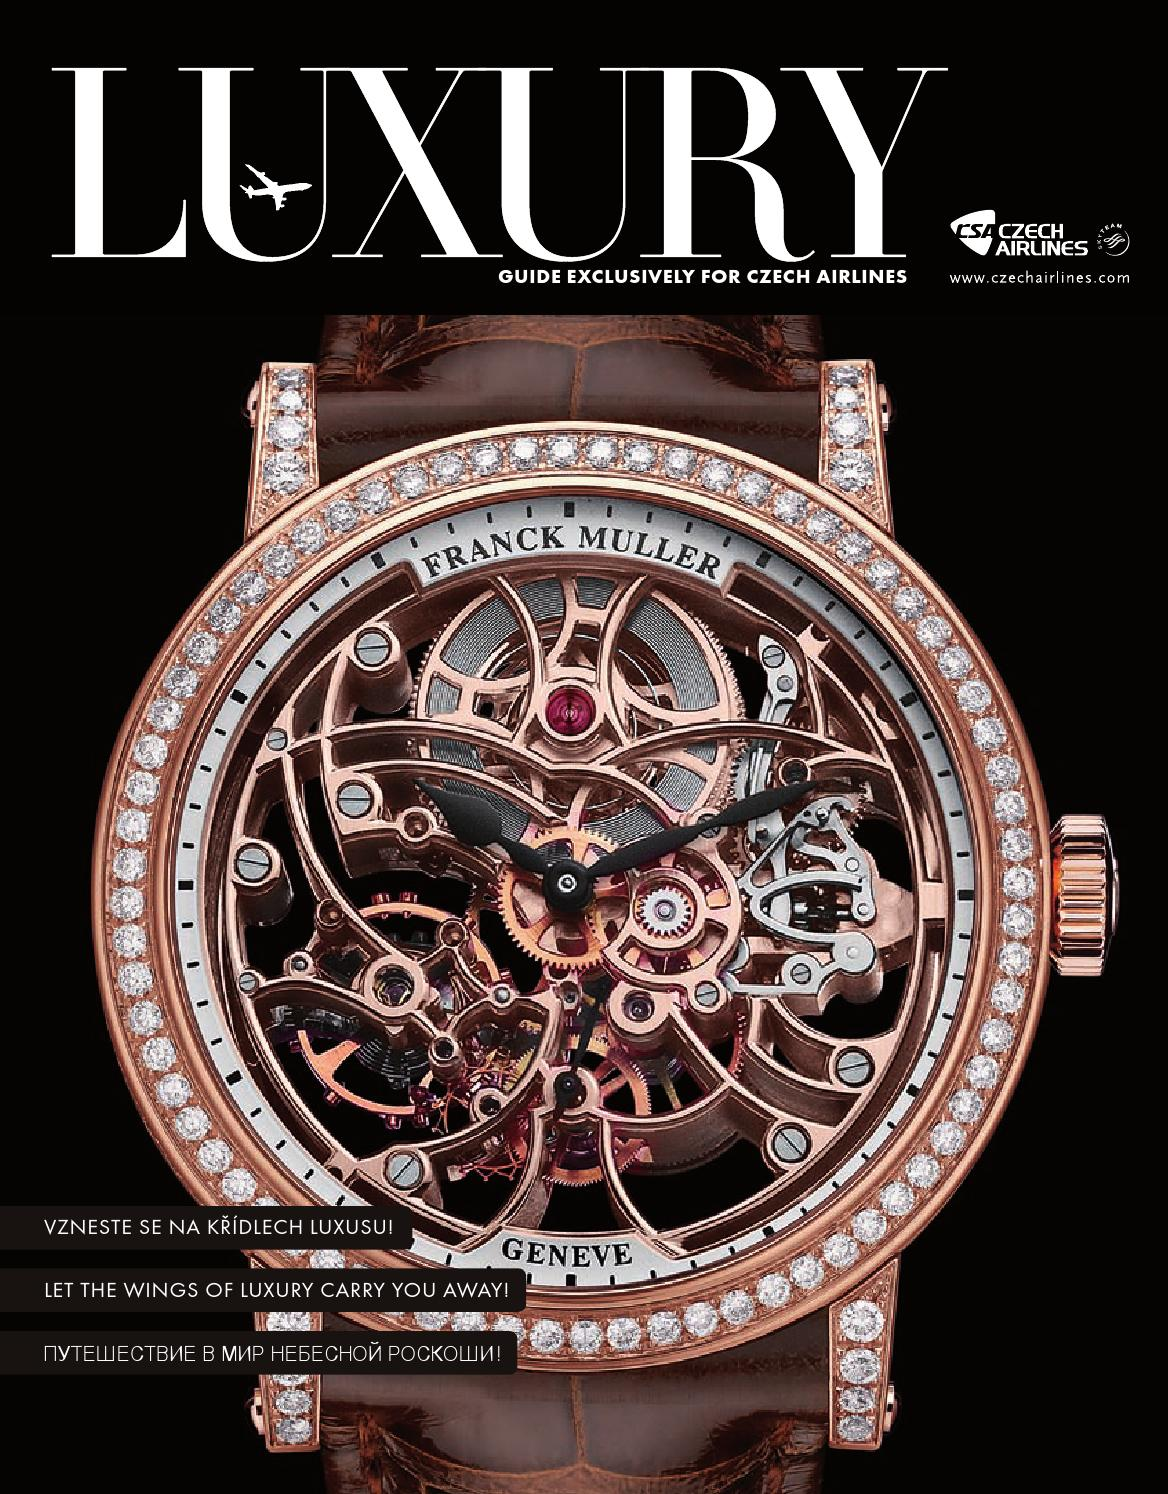 de8937ddf Luxury Guide exclusively for Czech Airlines 02 2015 by TomDesign - issuu